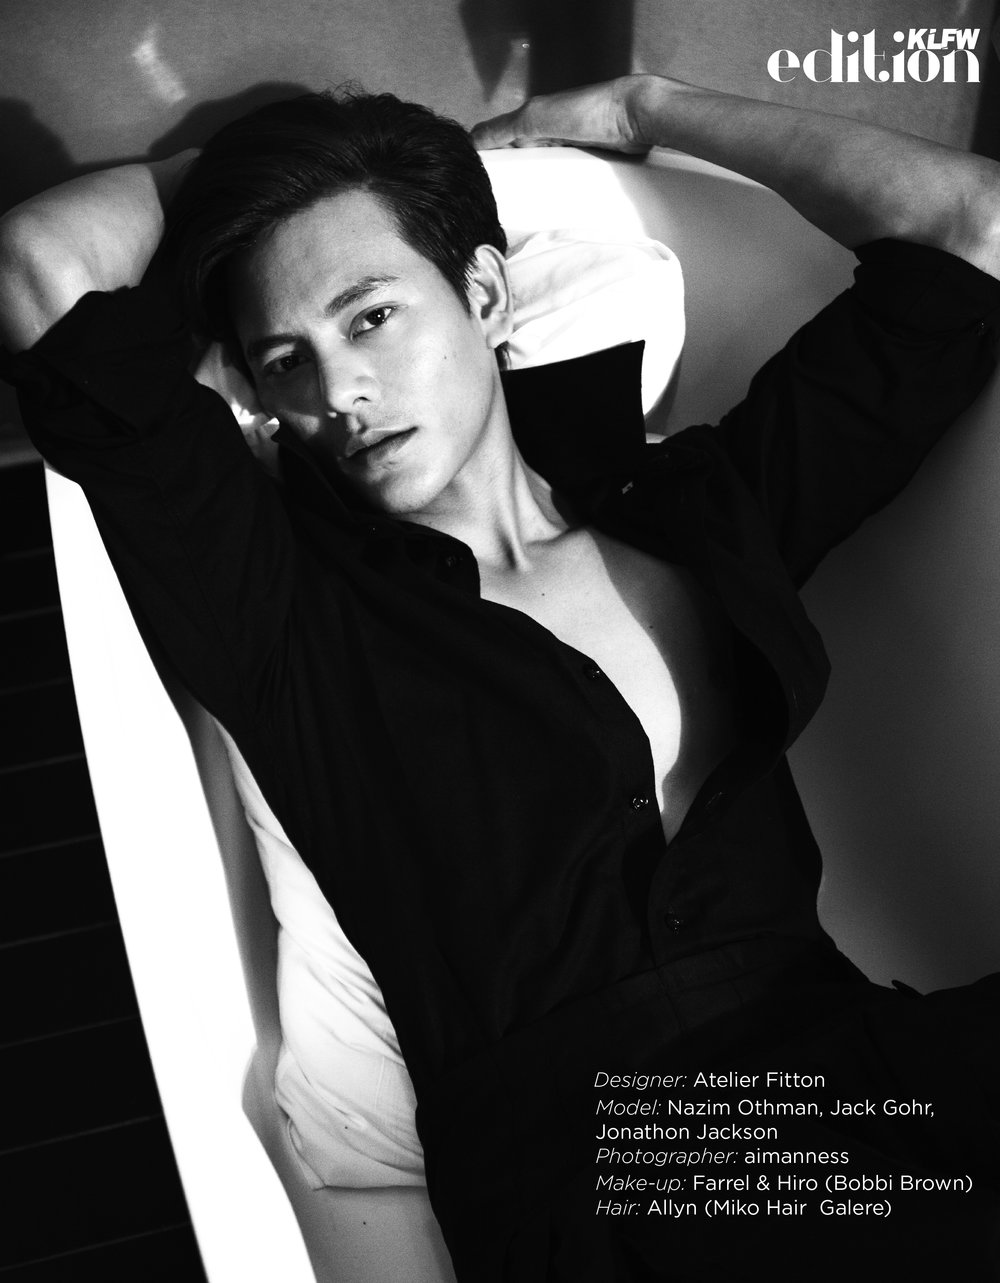 Designer:  Atelier Fitton  Model:  Nazim Othman  ,  Jack Gohr  ,  Jonathon Jackson  Photographer:  Aimanness   Make-up: Farrel & Hiro (  Bobbi Brown ) Hair: Allyn (  Miko Hair Galere  )